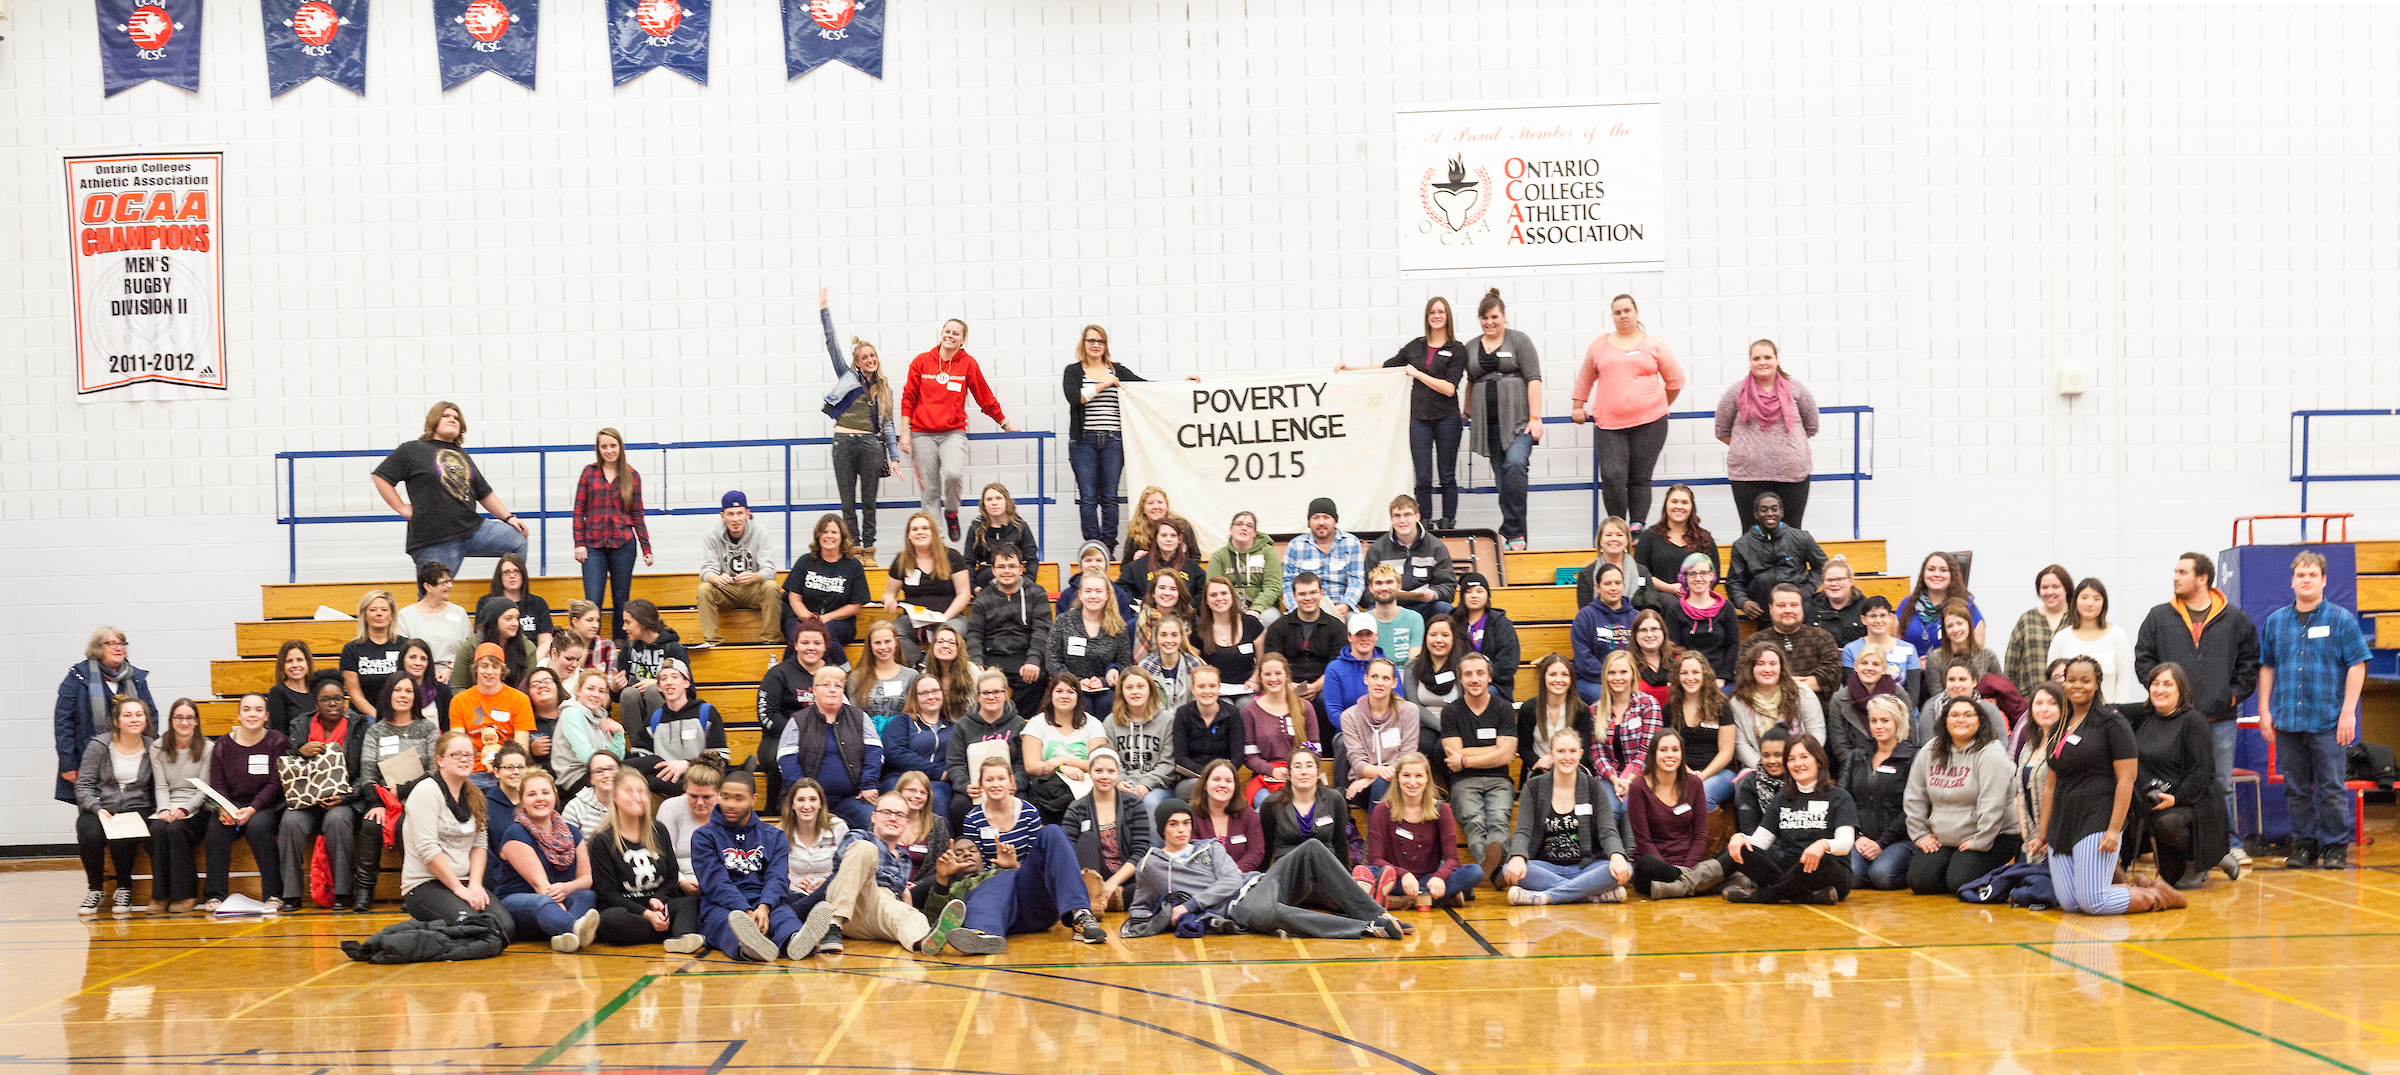 A large group of students pose for a photo in a gymnasium. A sign behind them reads,